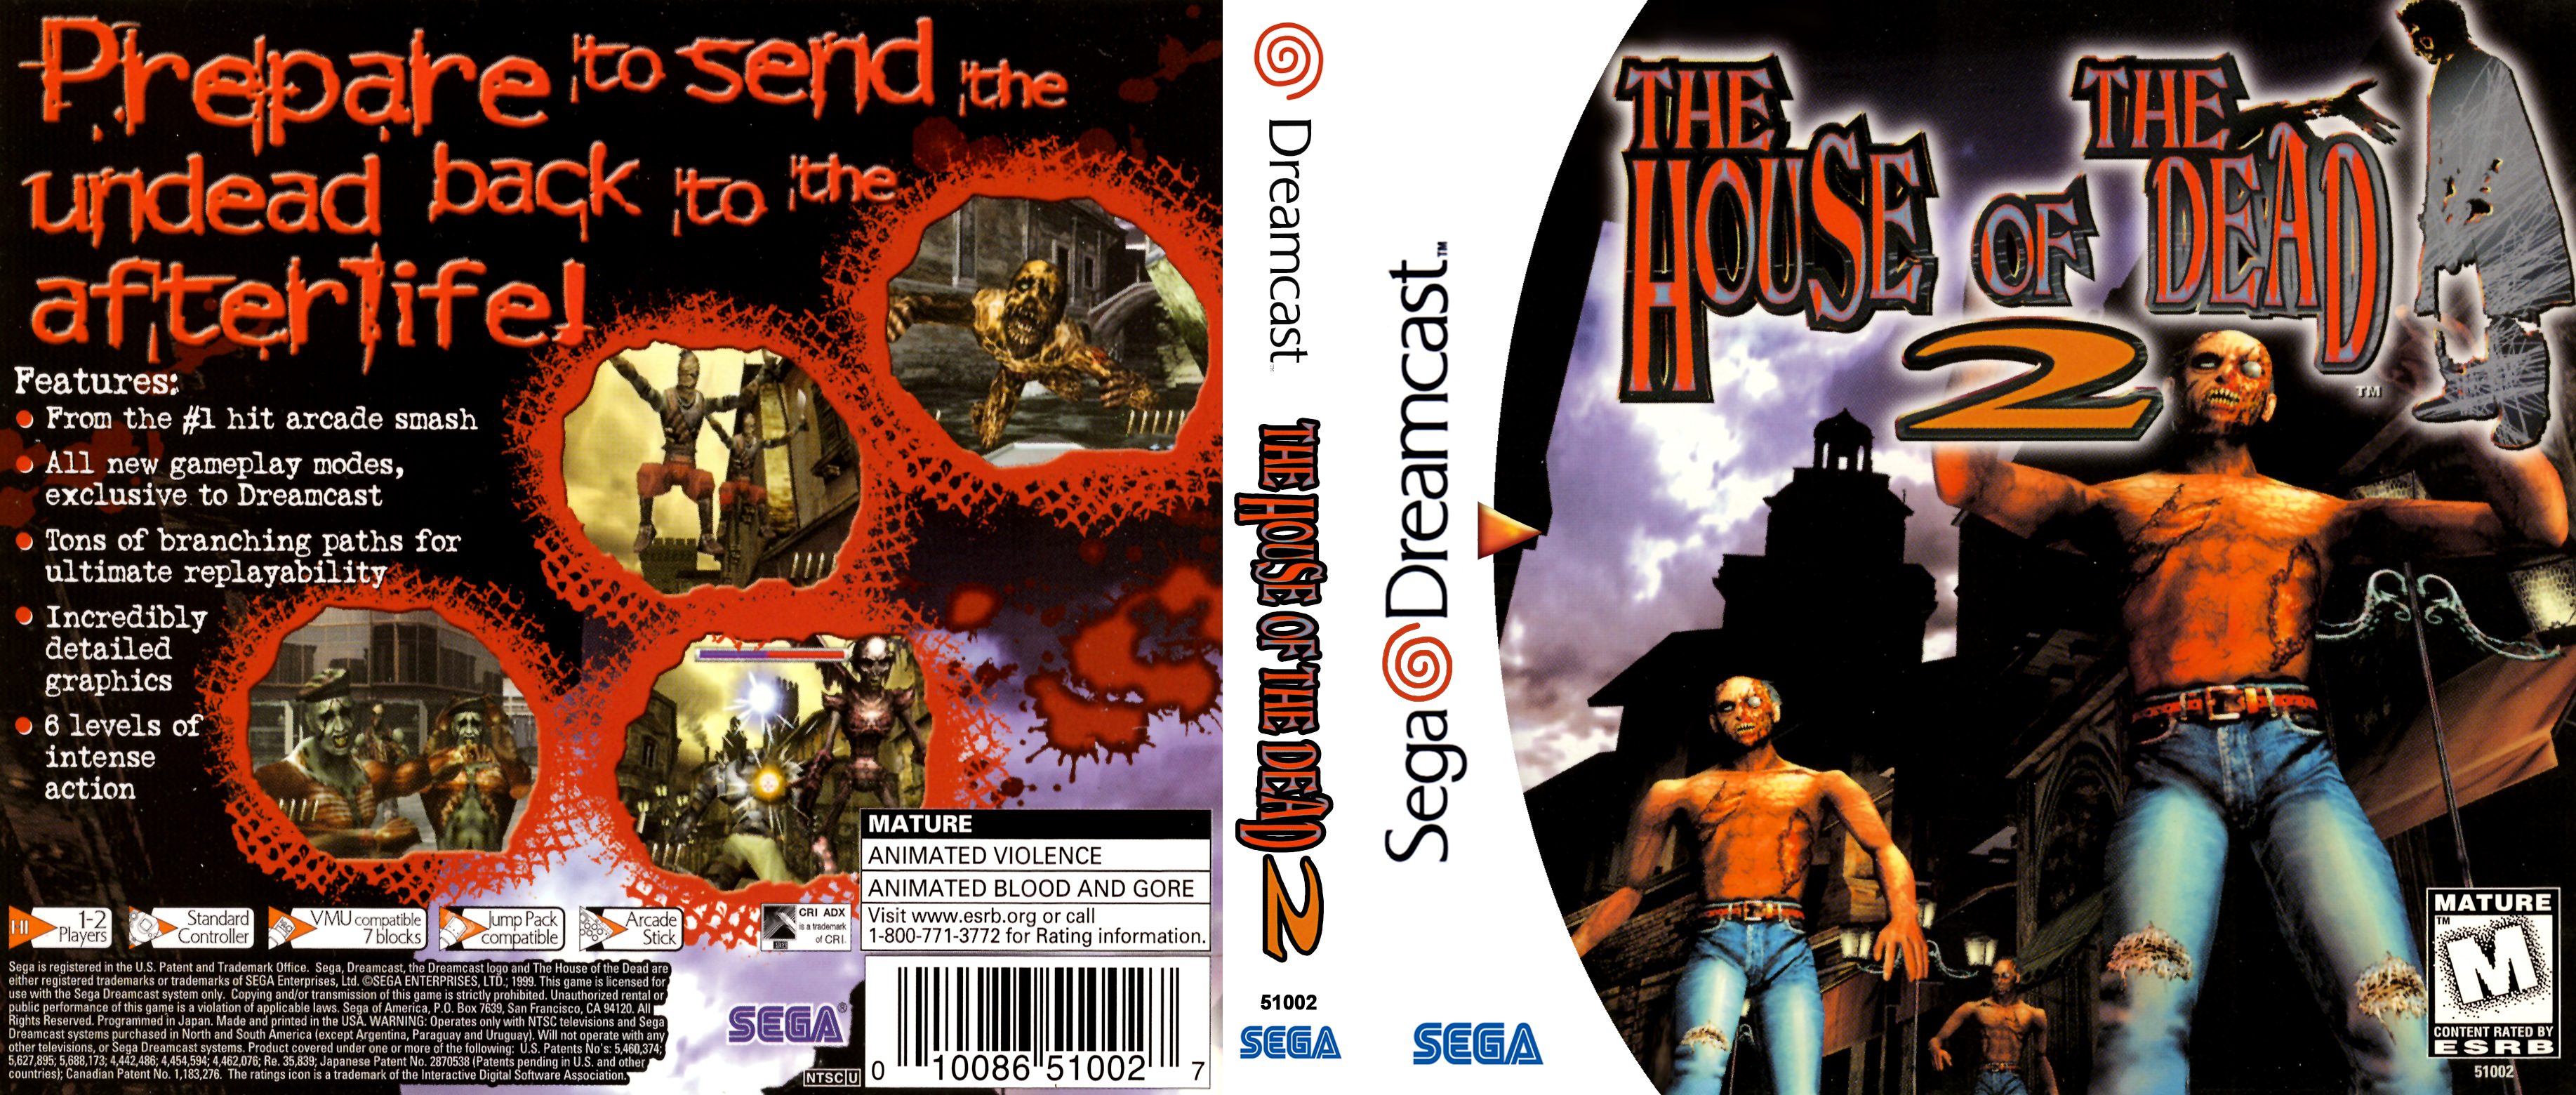 The House Of The Dead 2 Dreamcast Covers Cover Century Over